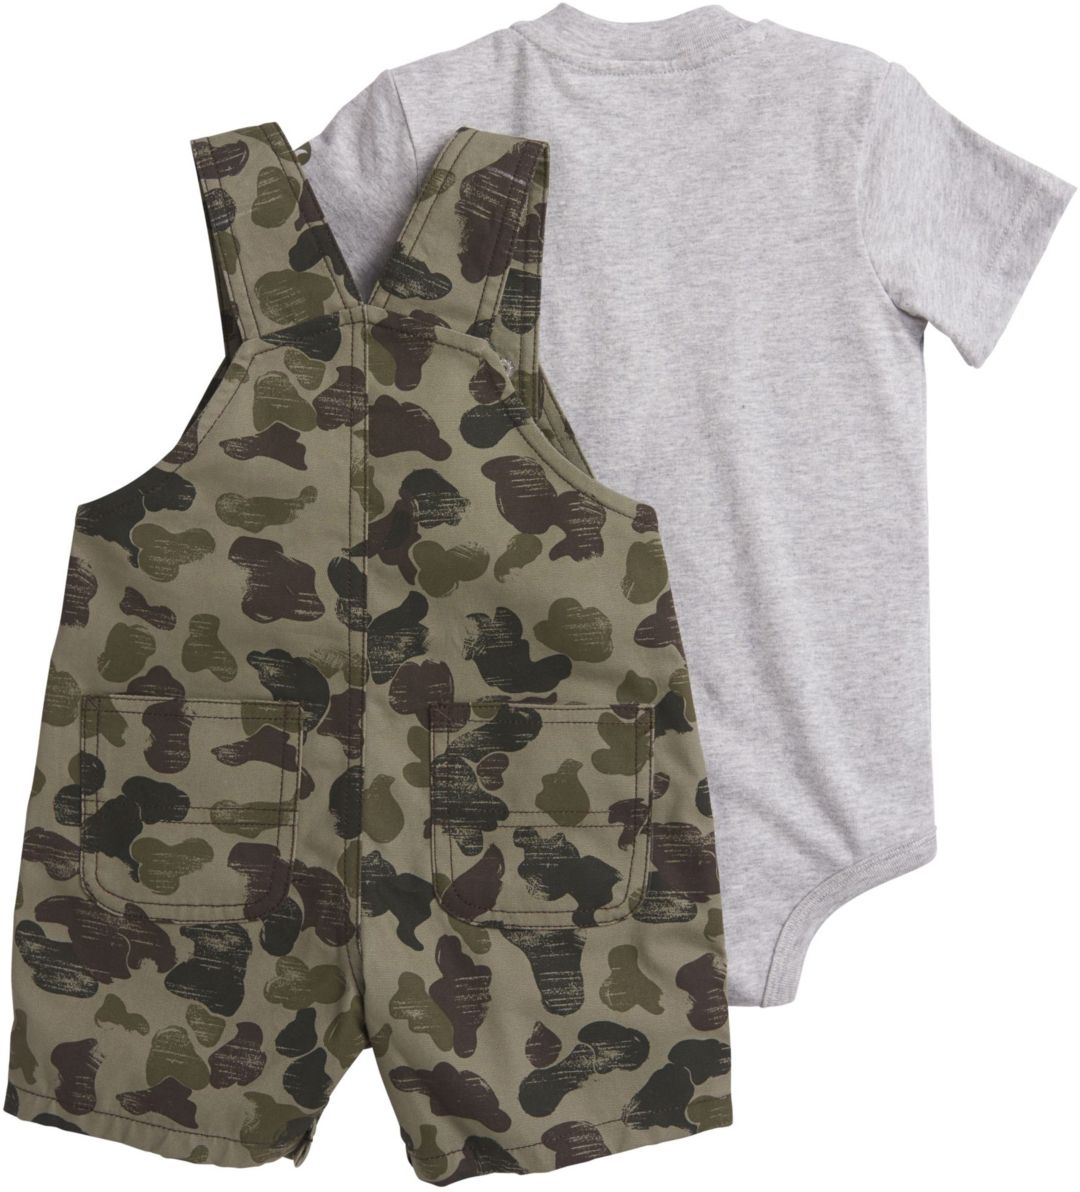 9113f5919 Carhartt Infant Boys' 2-Piece Onesie and Camo Shortall Set | DICK'S ...